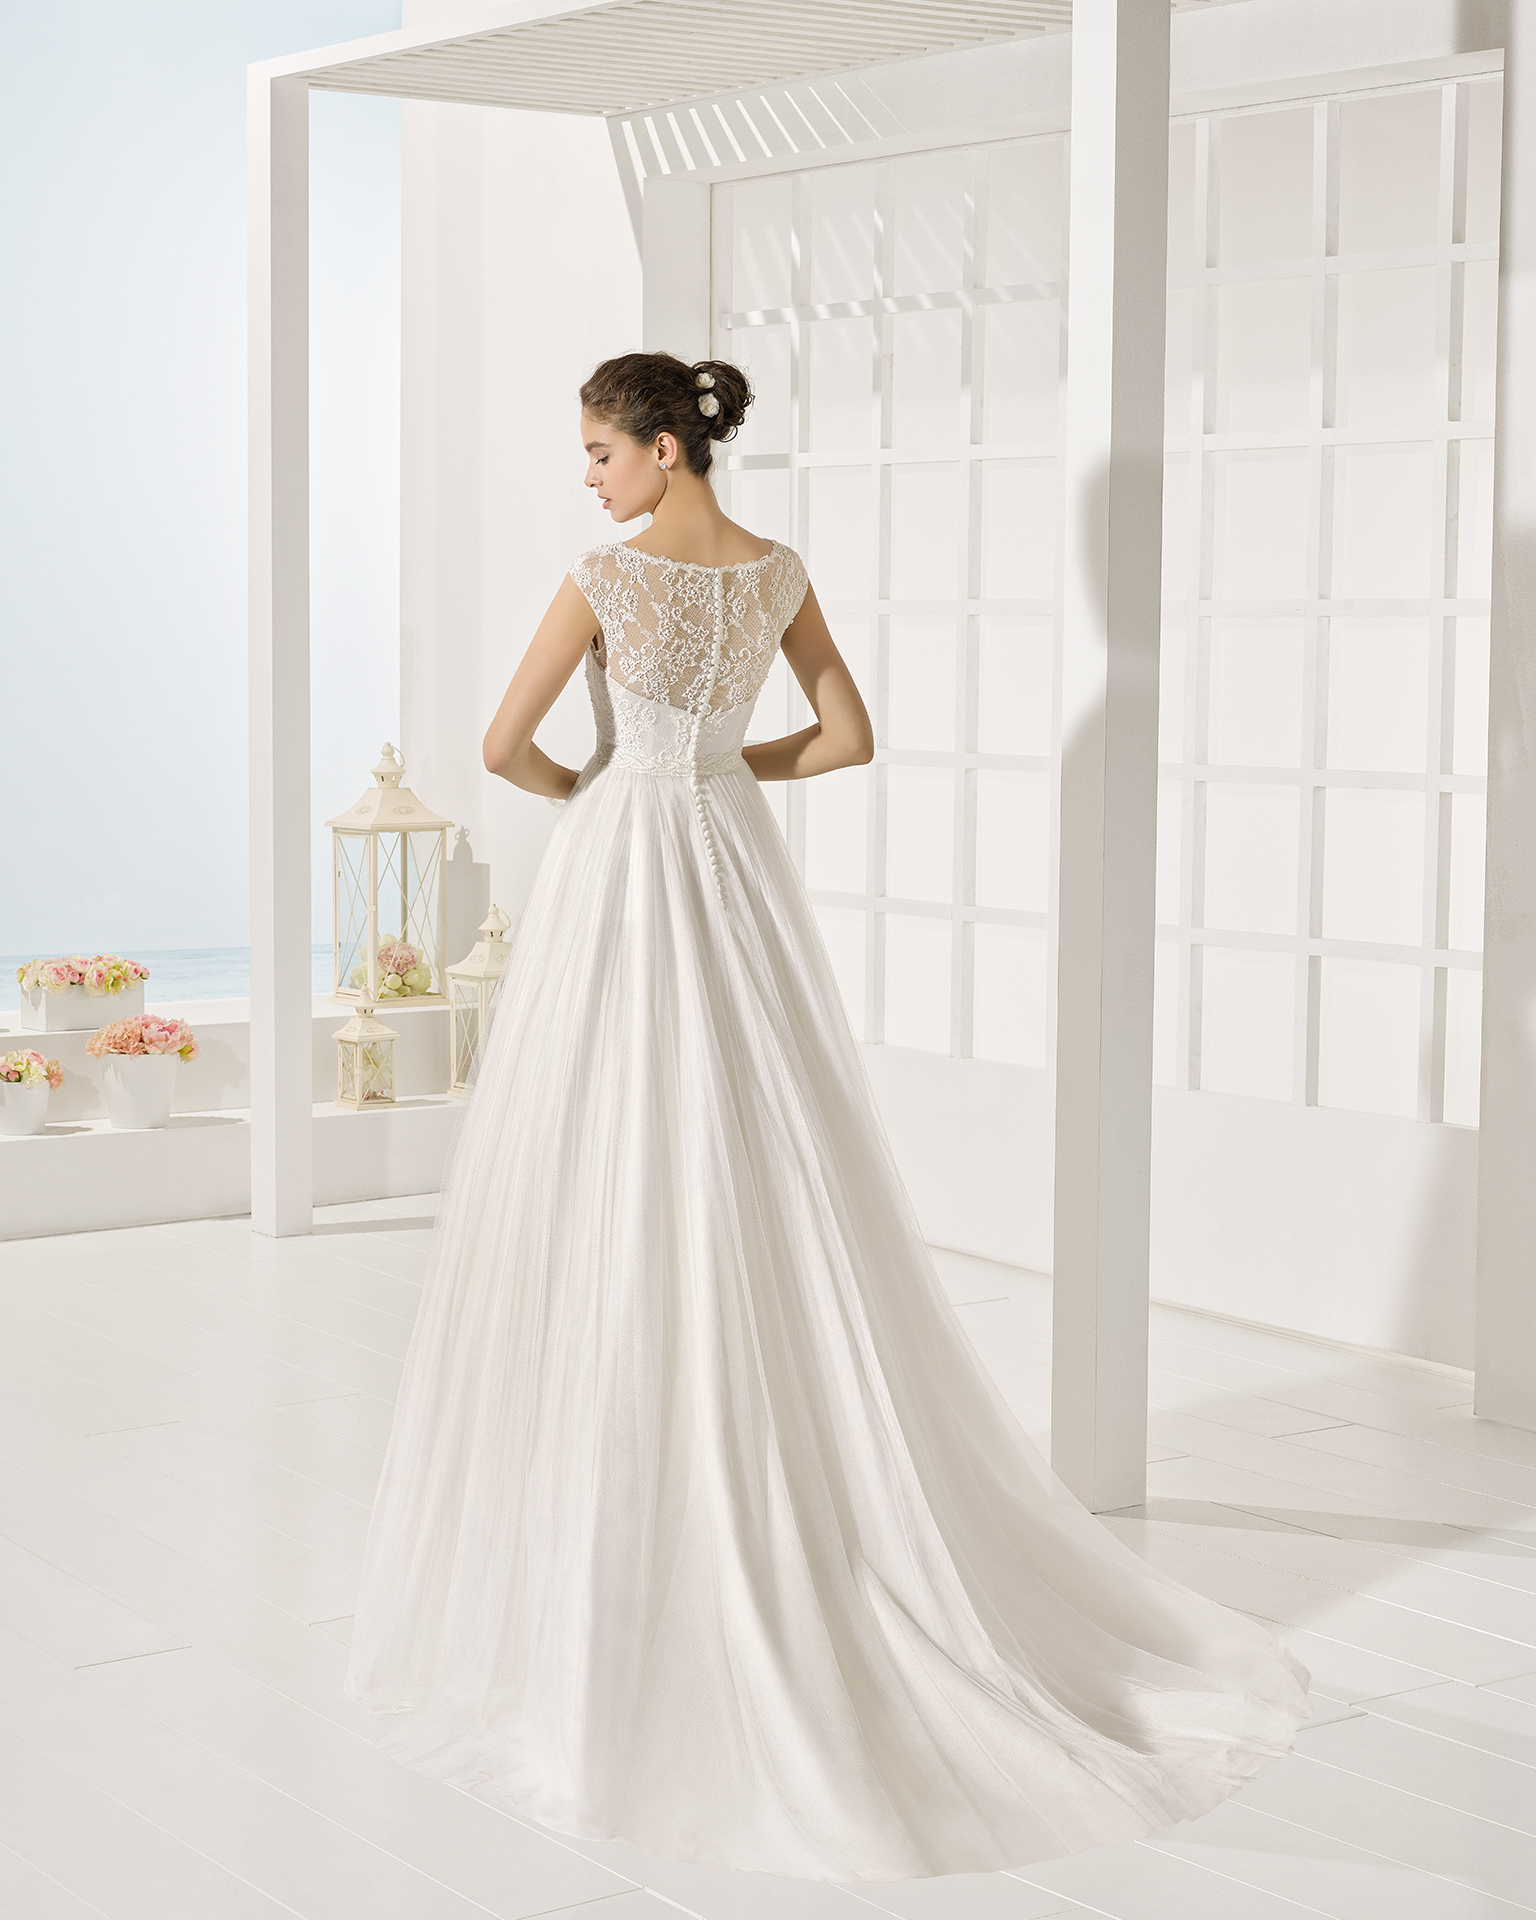 Yole wedding dress, Luna Novias 2017